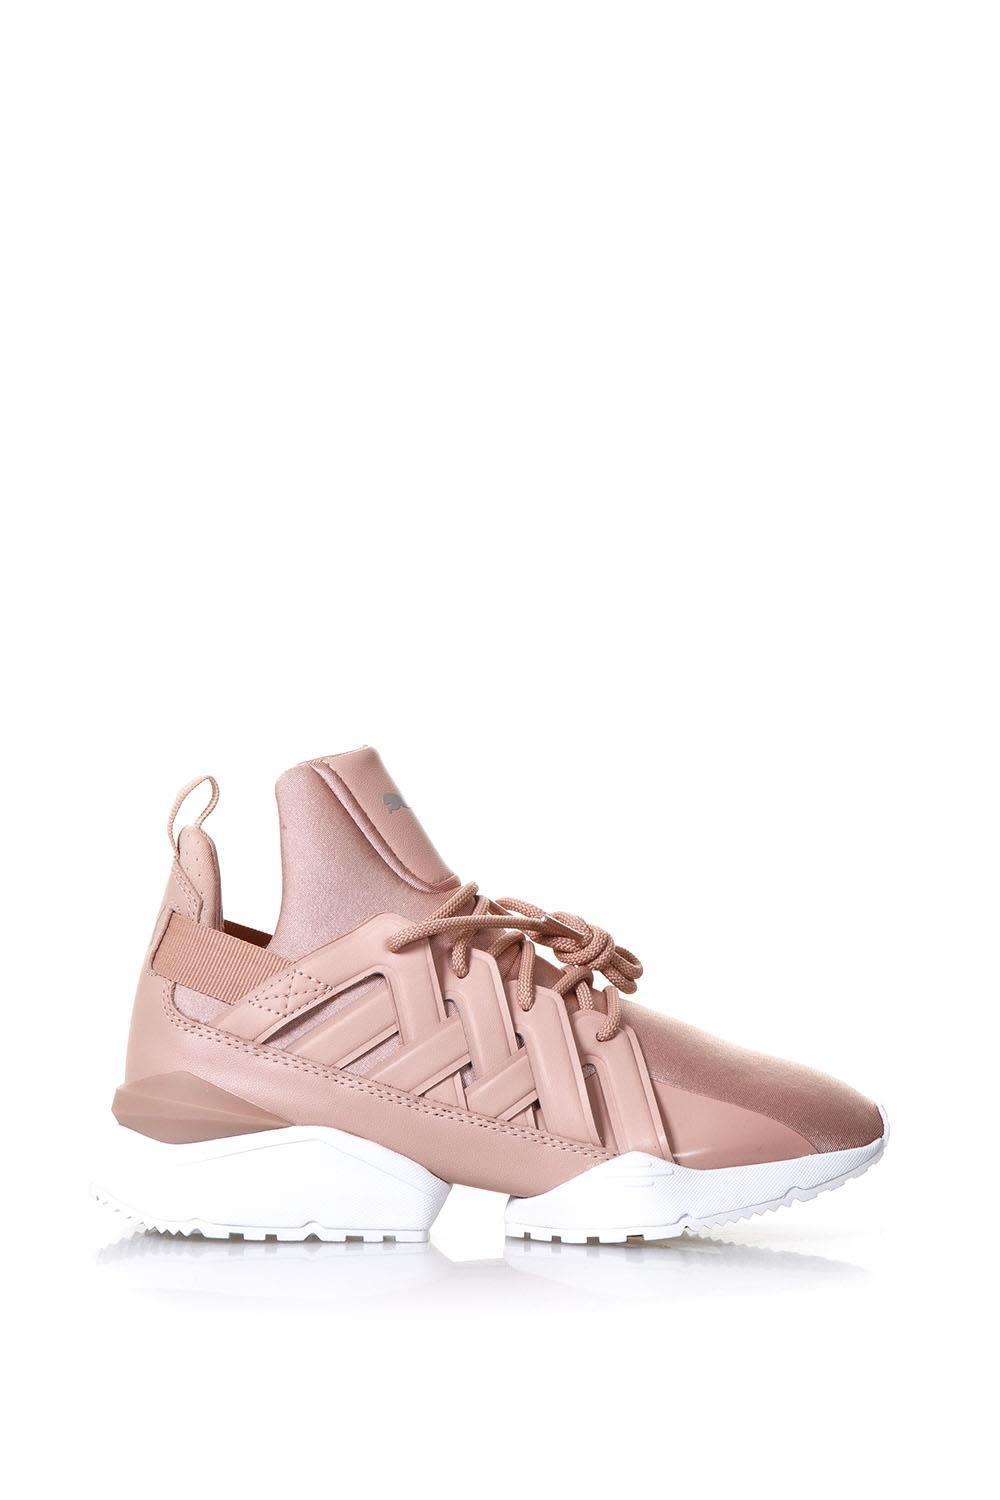 Puma Muse Pink Eco-satin Sneakers